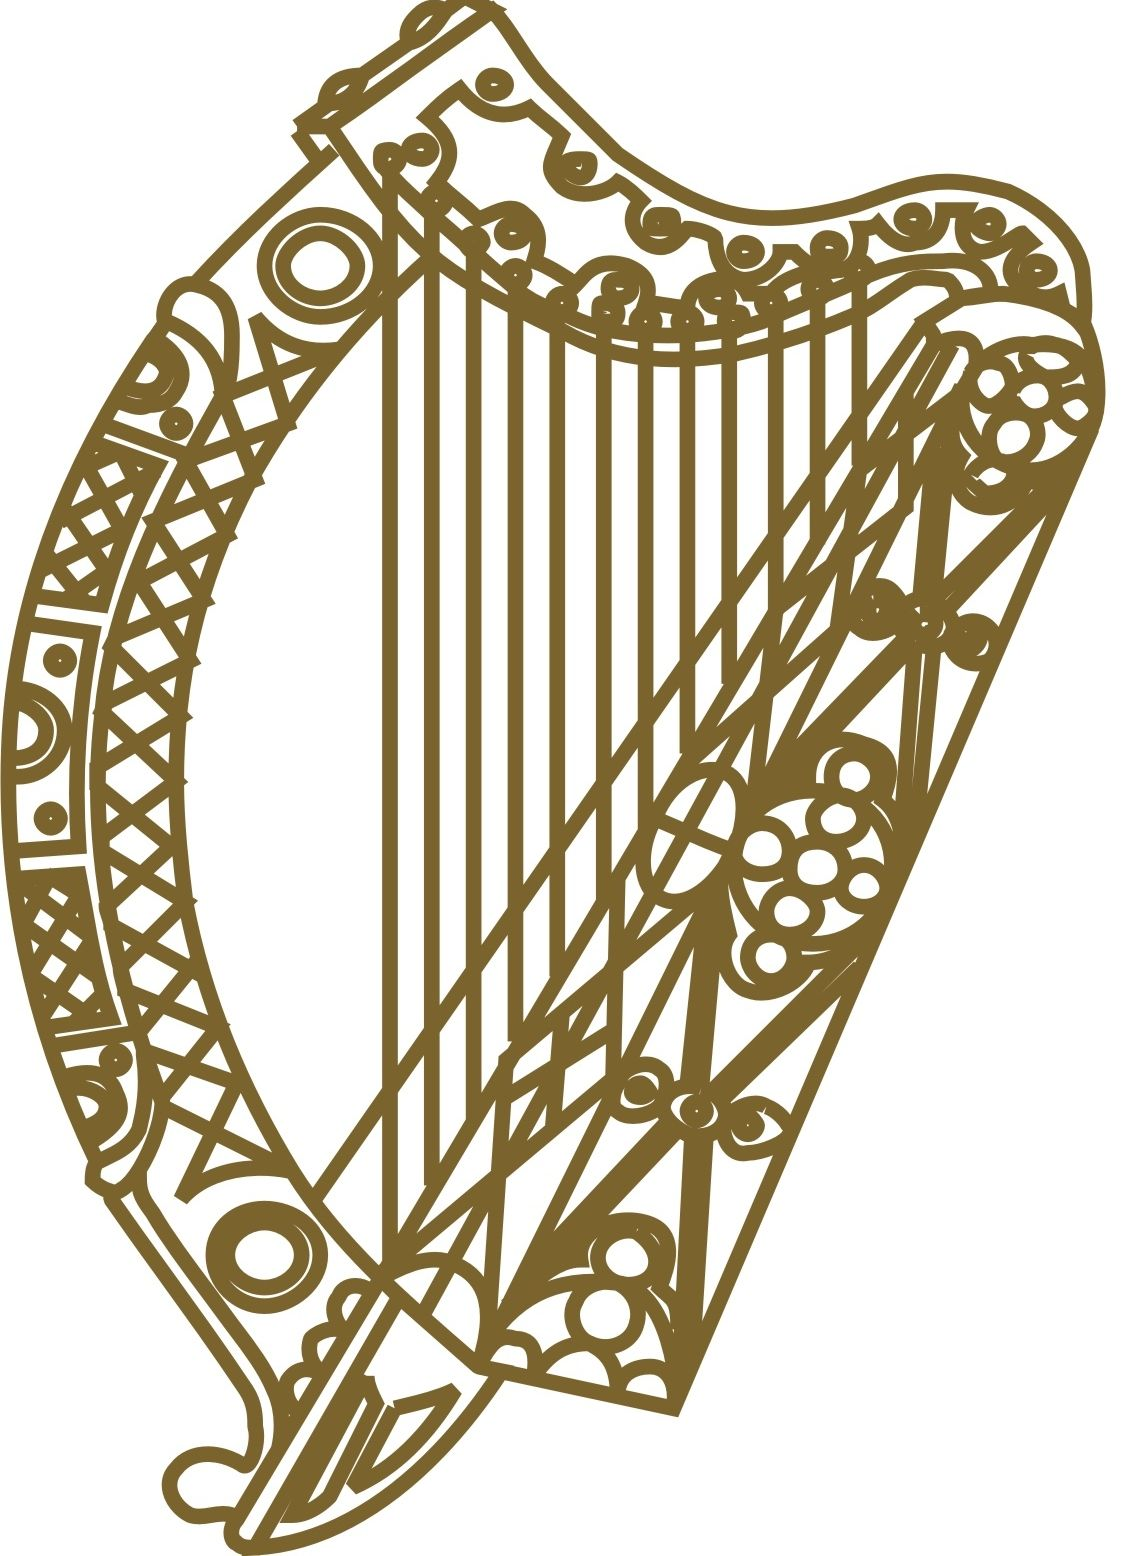 Irish harp inside the heart on the claddagh my irish world irish harp inside the heart on the claddagh buycottarizona Image collections